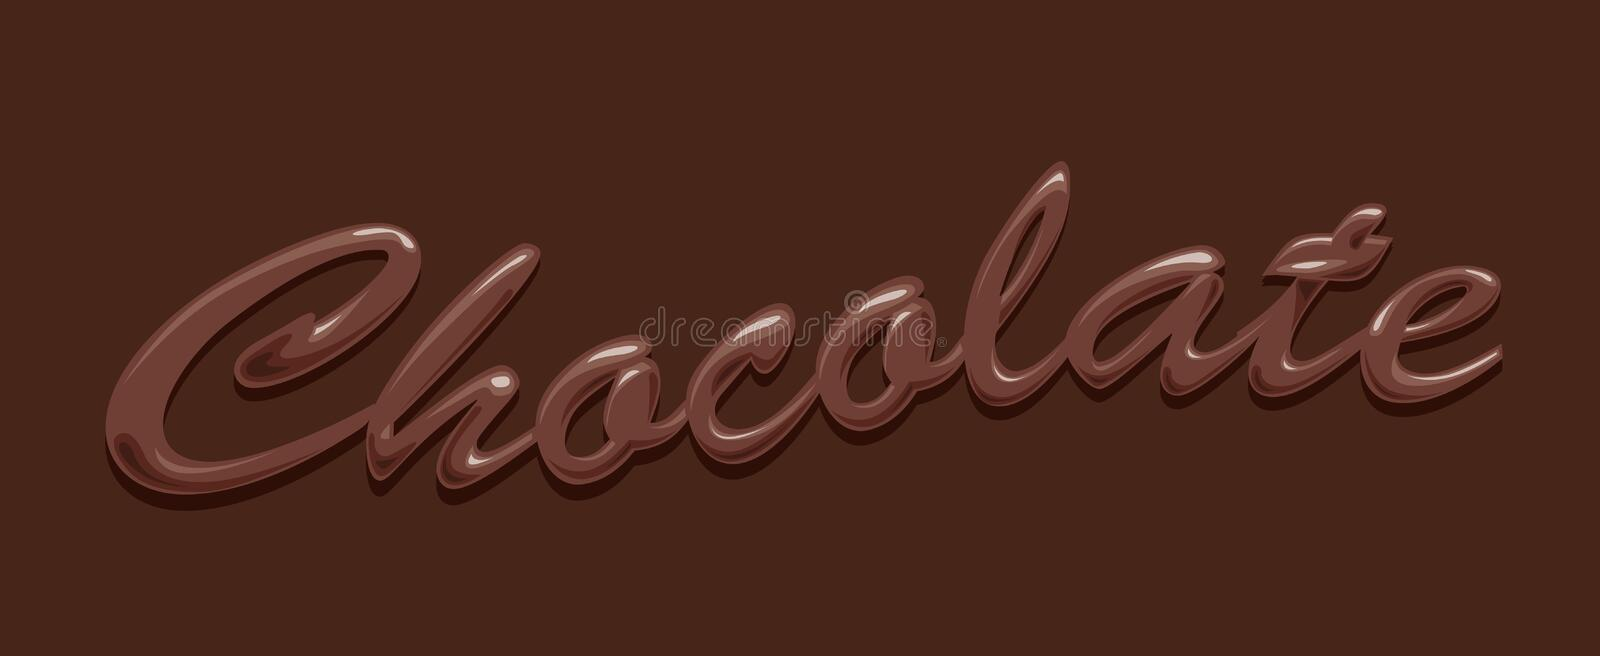 Download Chocolate Royalty Free Stock Photography - Image: 22441627